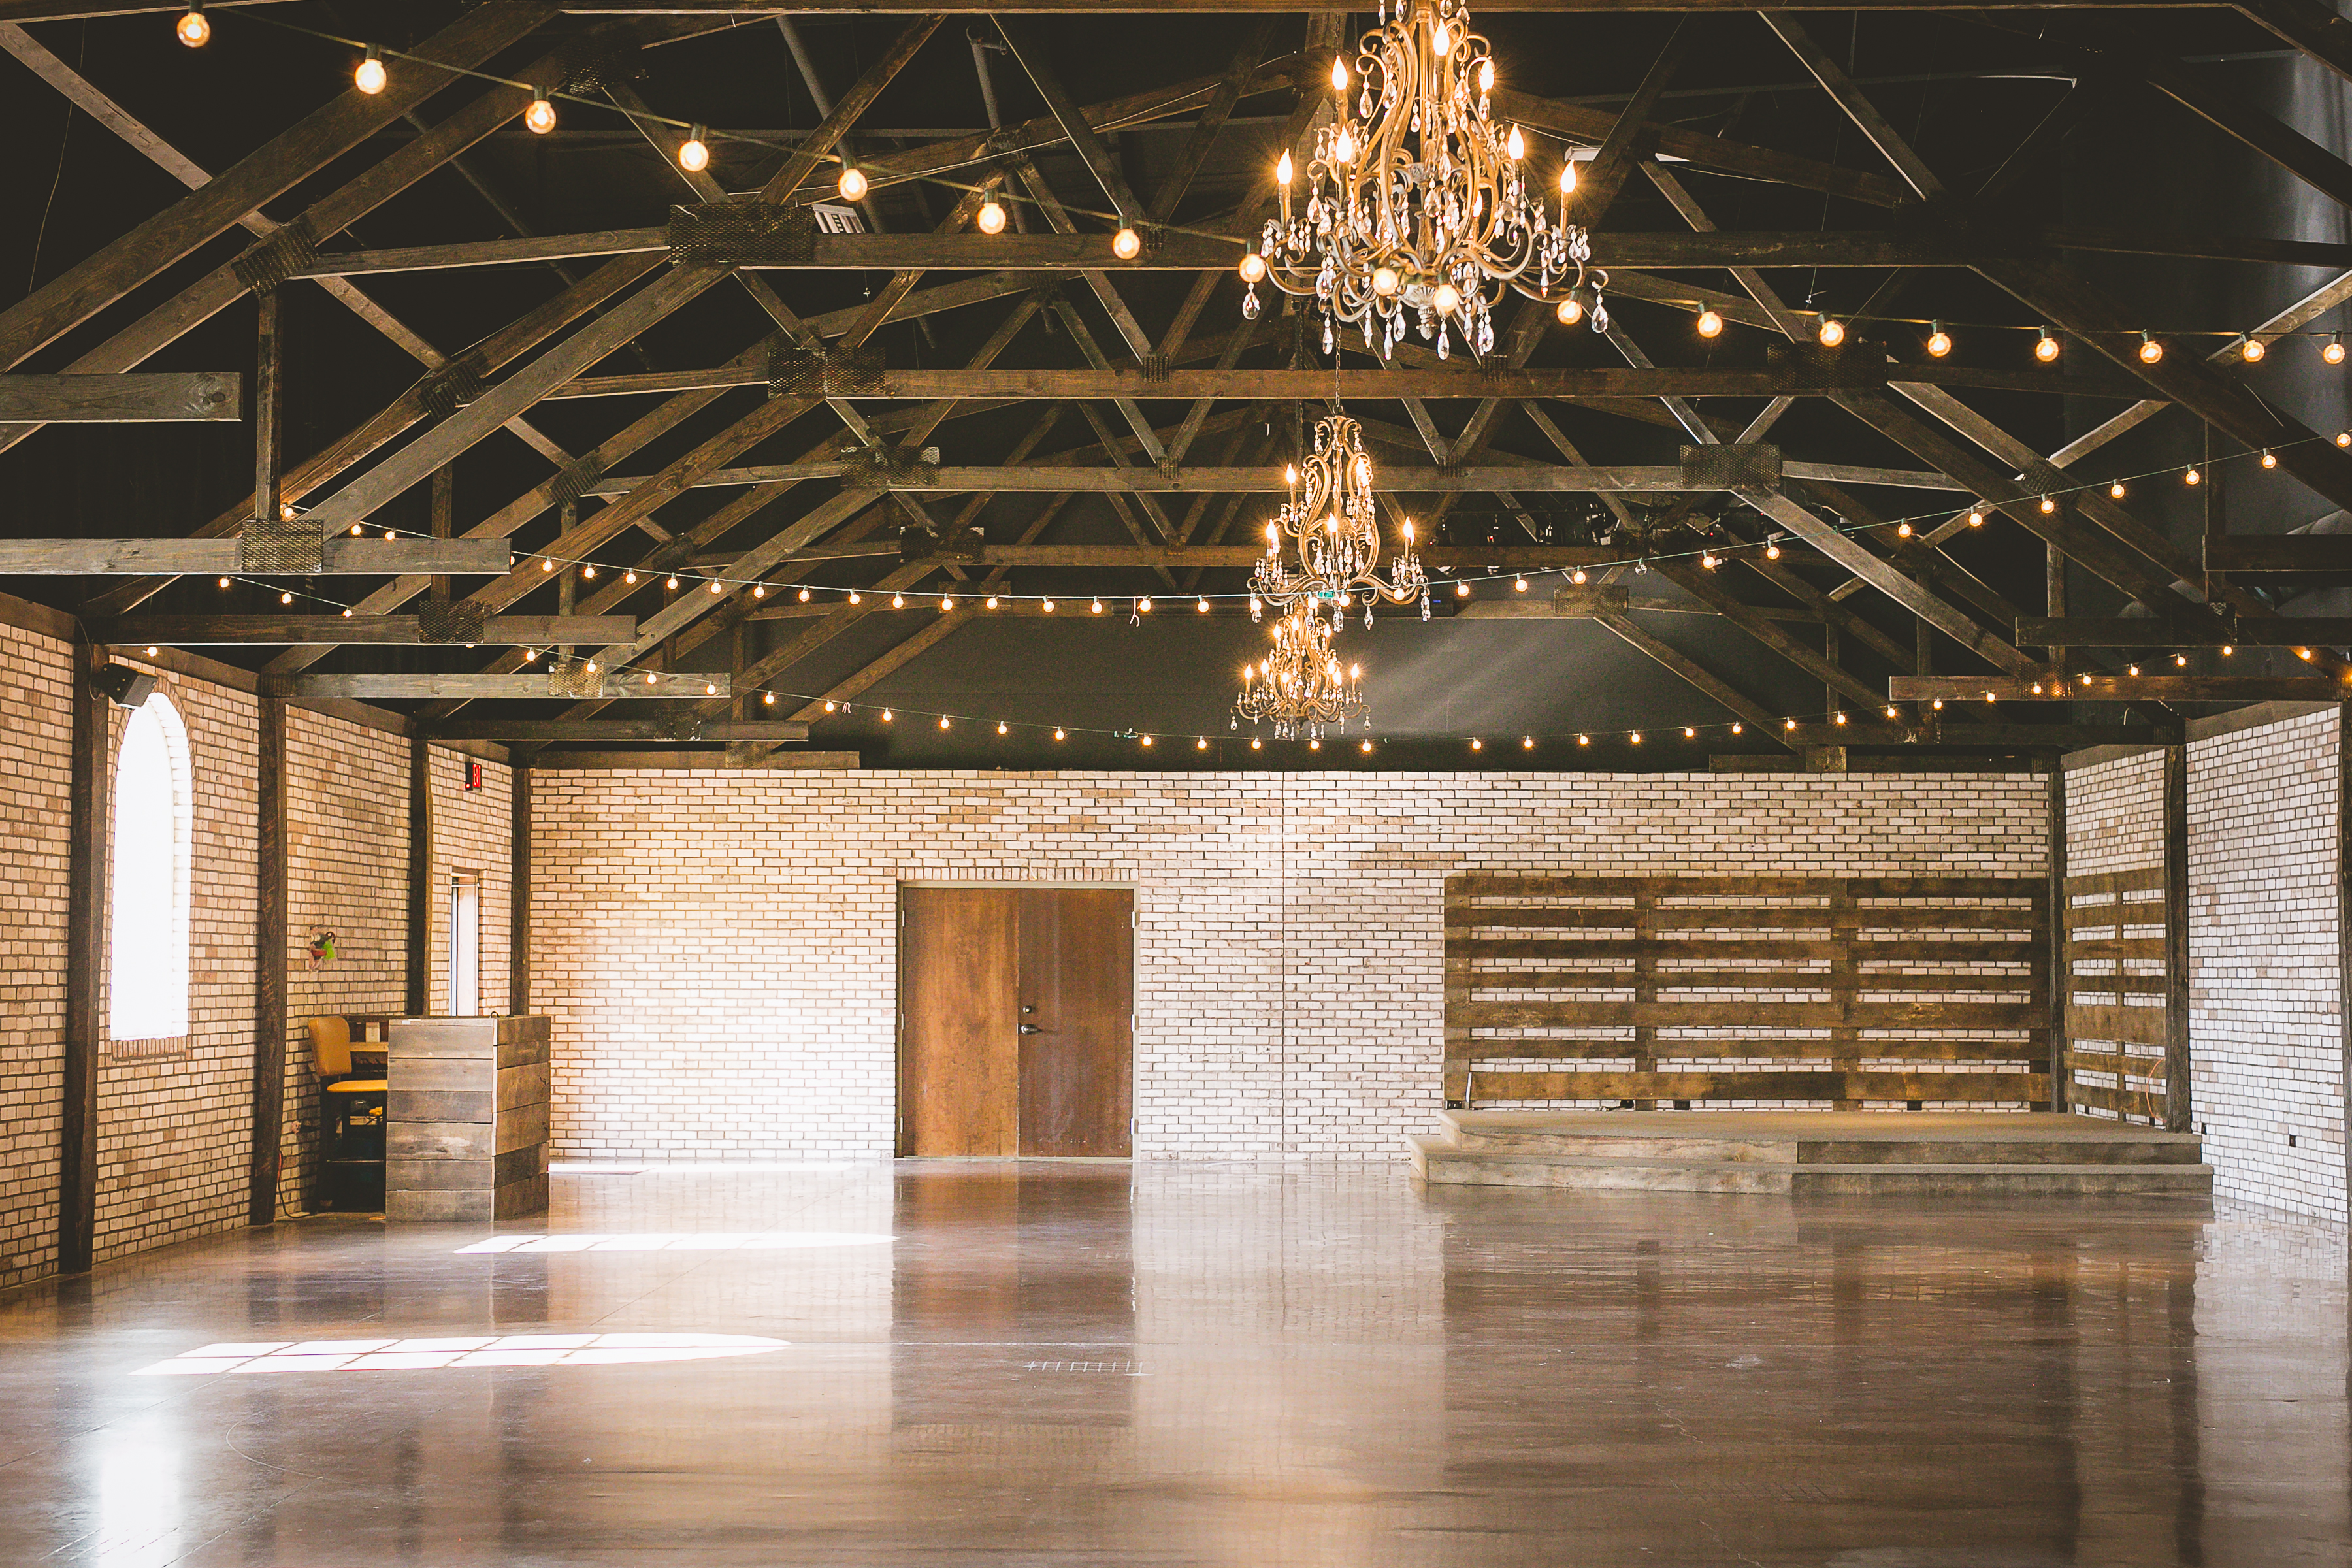 Event venue and wedding space in clarksville tn, The belle Hollow